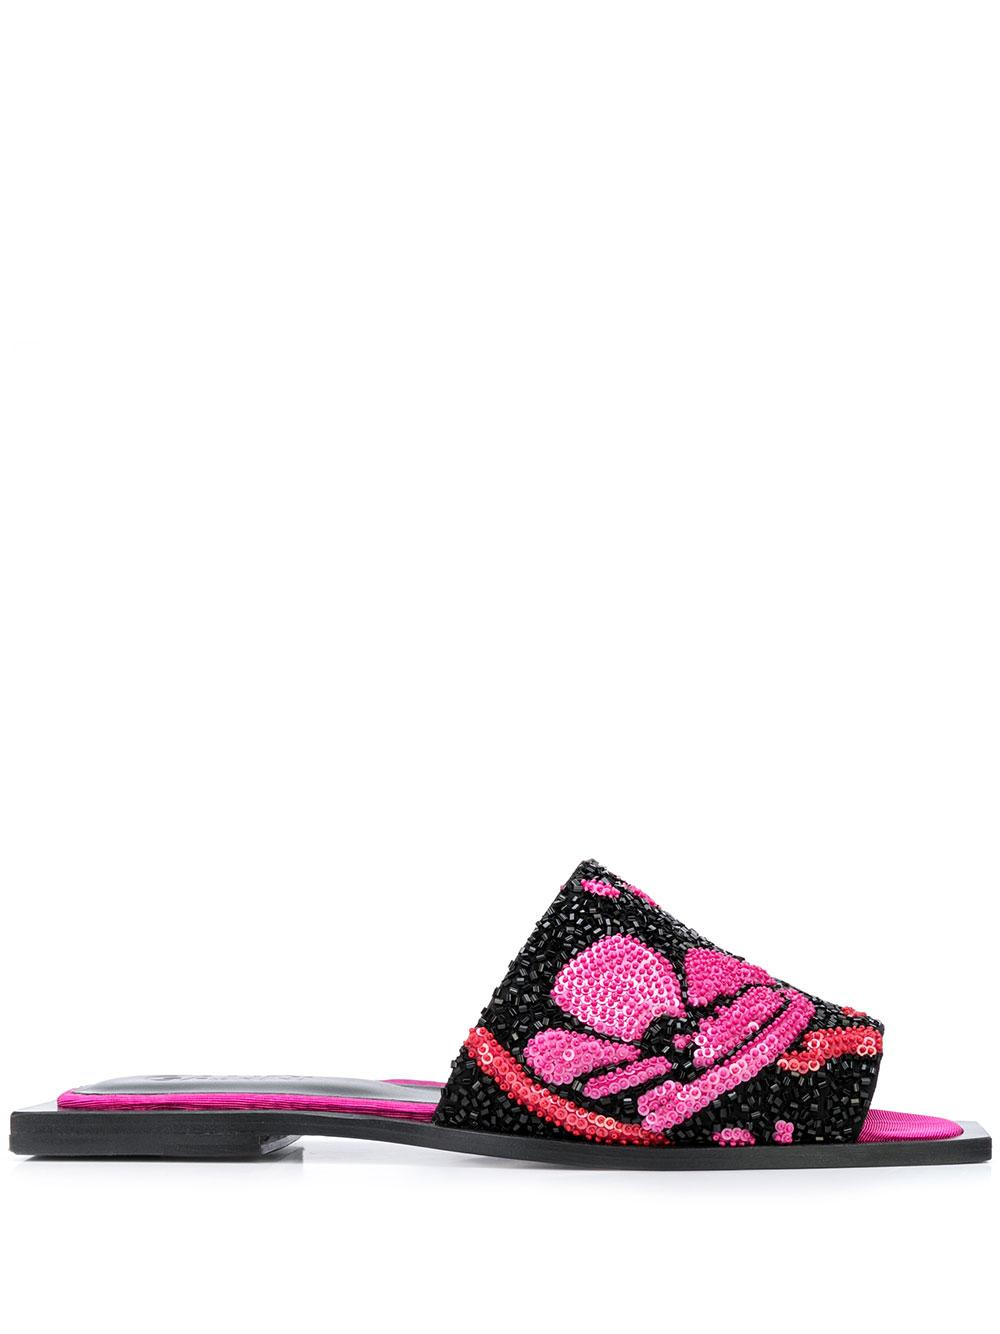 Sequin Bead Flat Slide Sandal